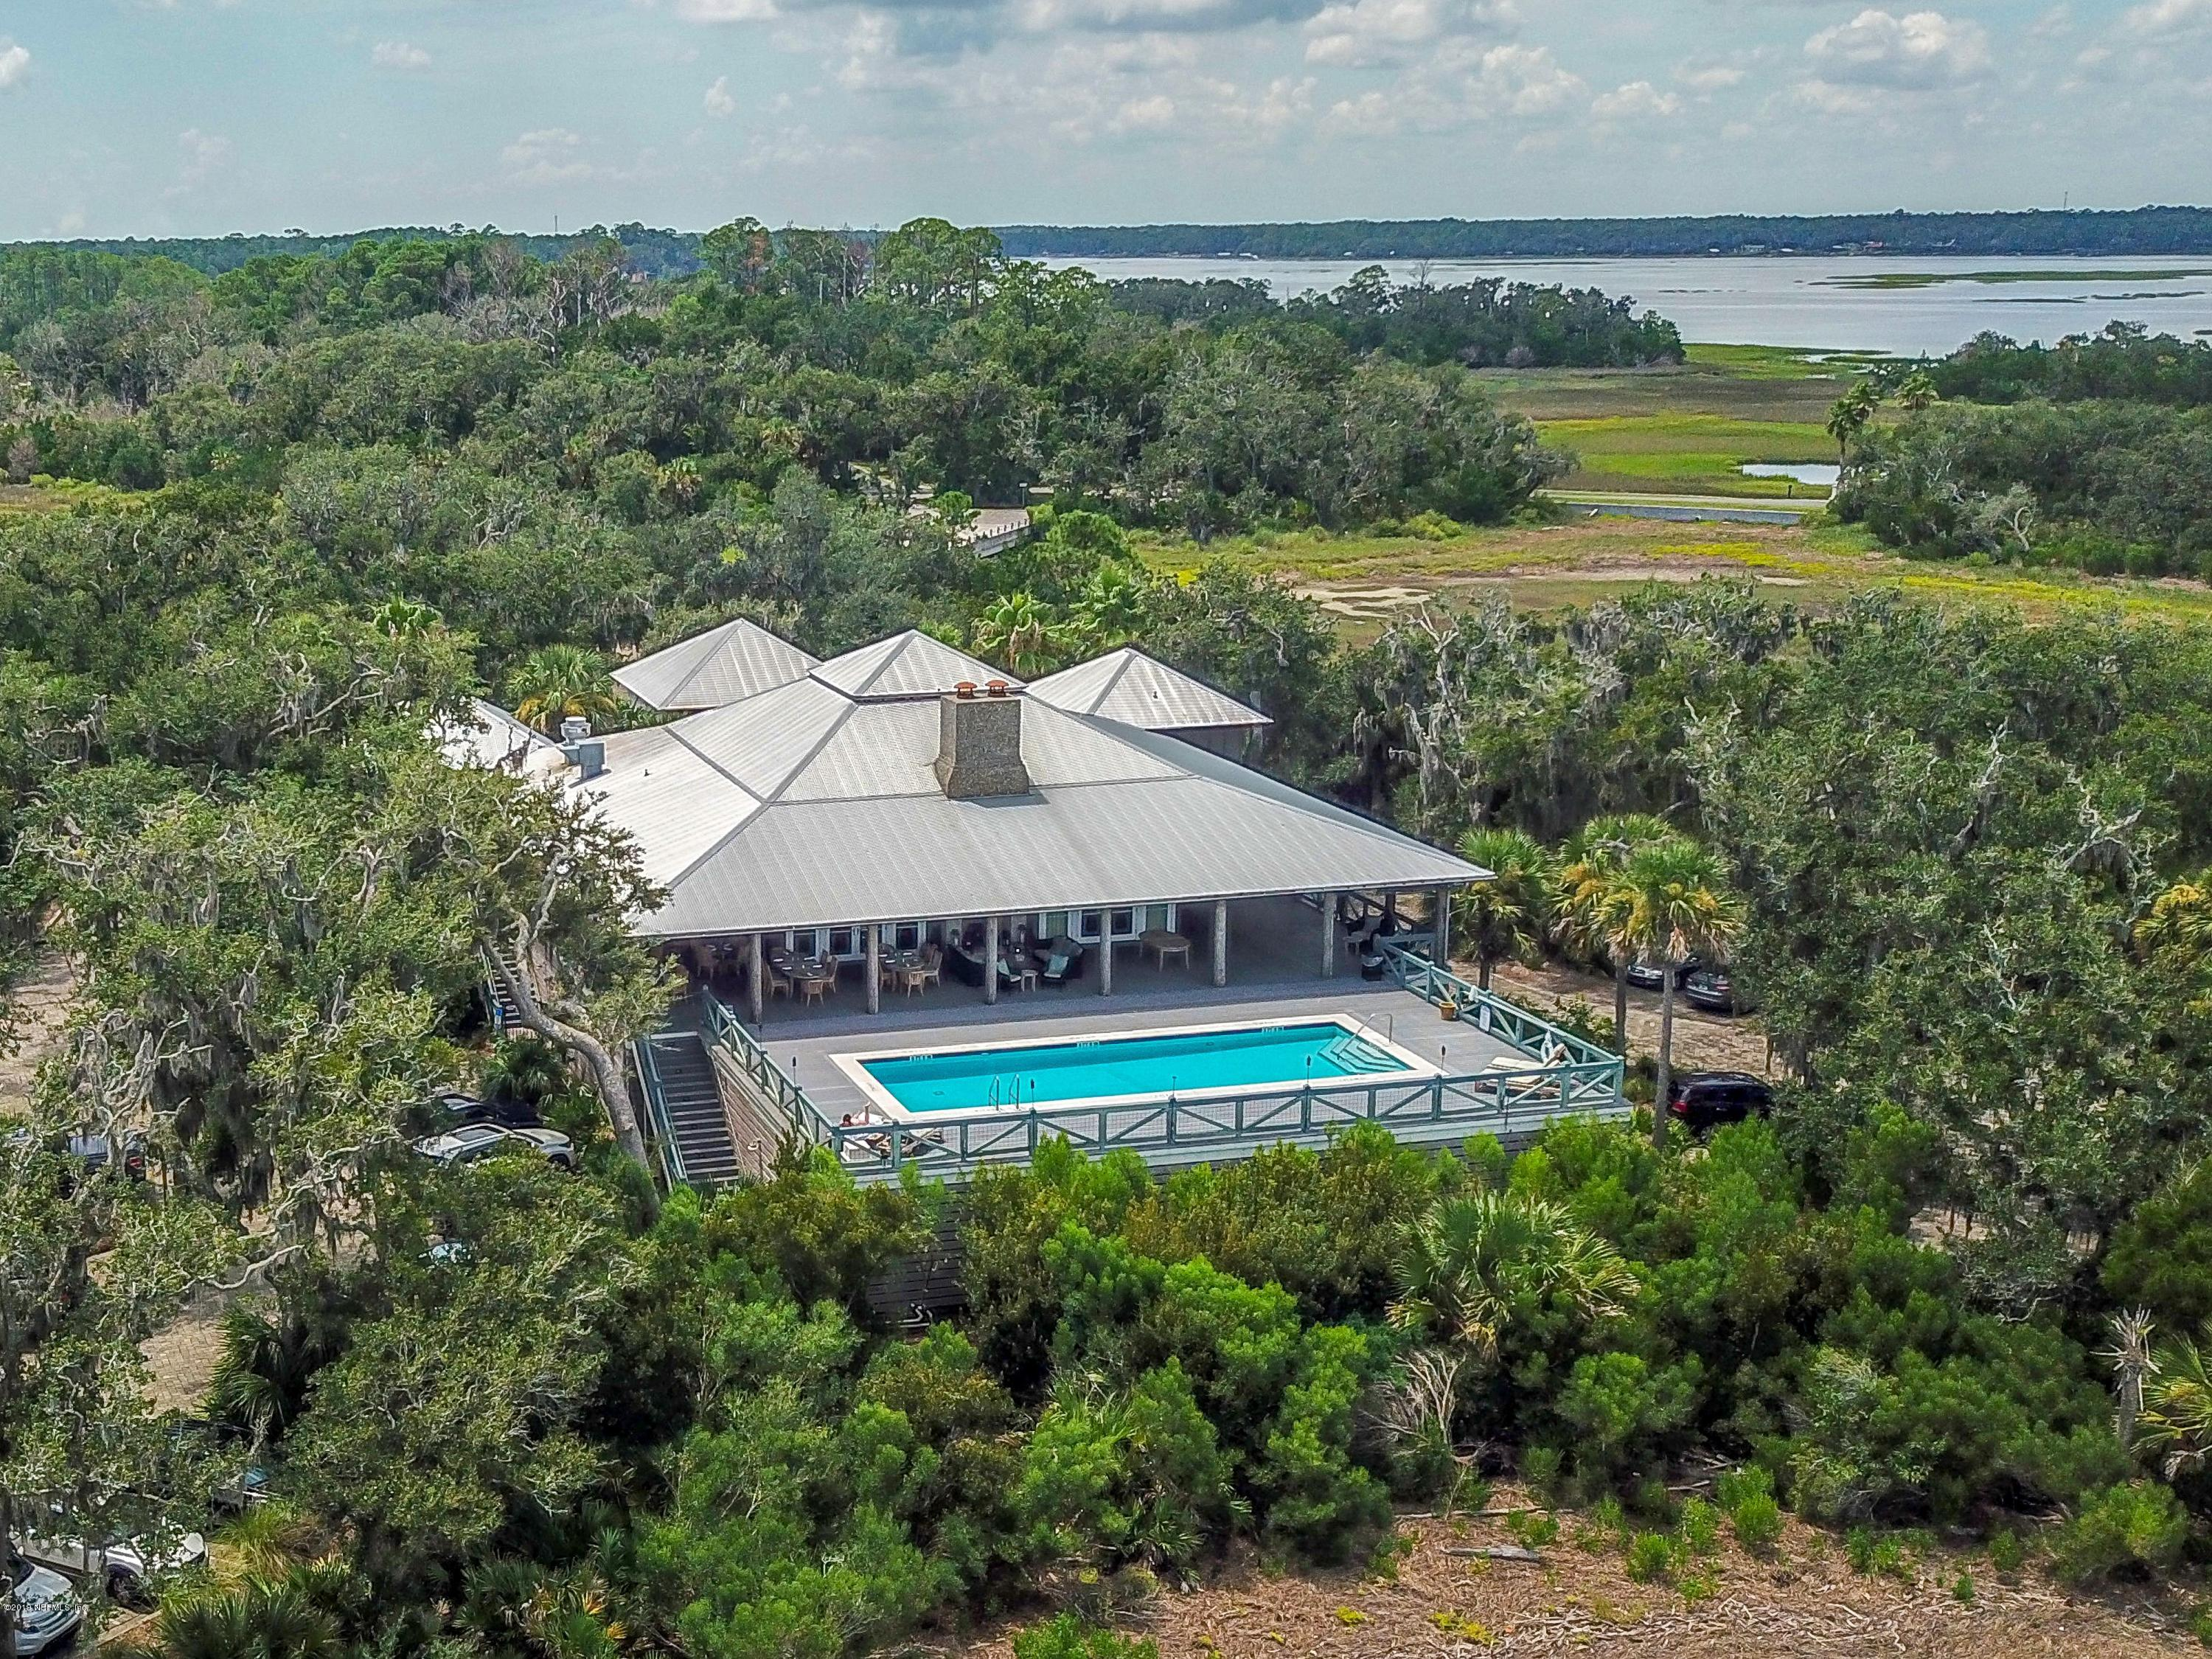 96034 SOAP CREEK, FERNANDINA BEACH, FLORIDA 32034, 3 Bedrooms Bedrooms, ,3 BathroomsBathrooms,Residential,For sale,SOAP CREEK,1050972